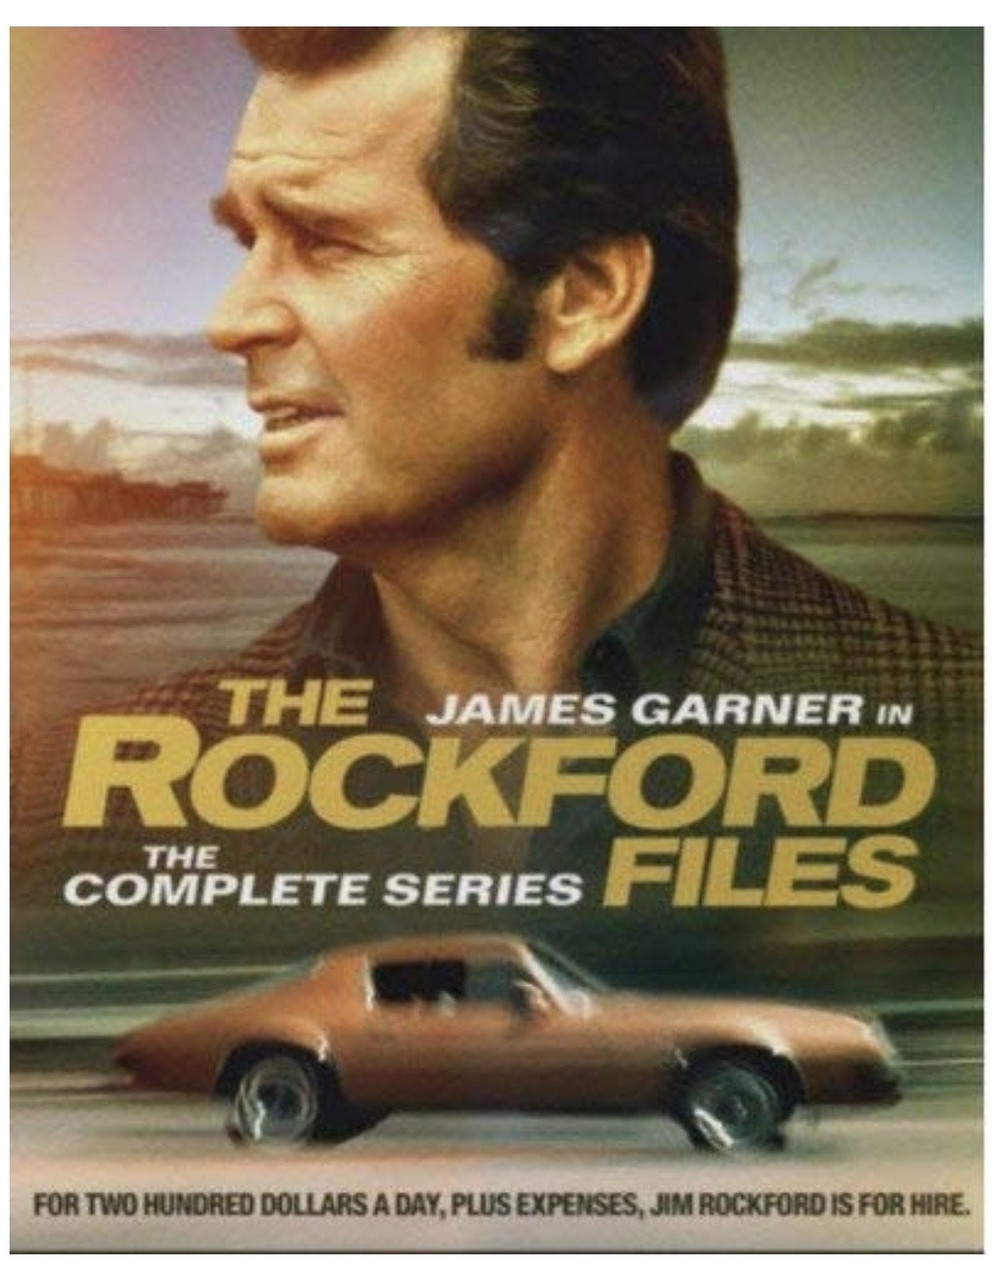 The Rockford Files - The Complete Series DVD